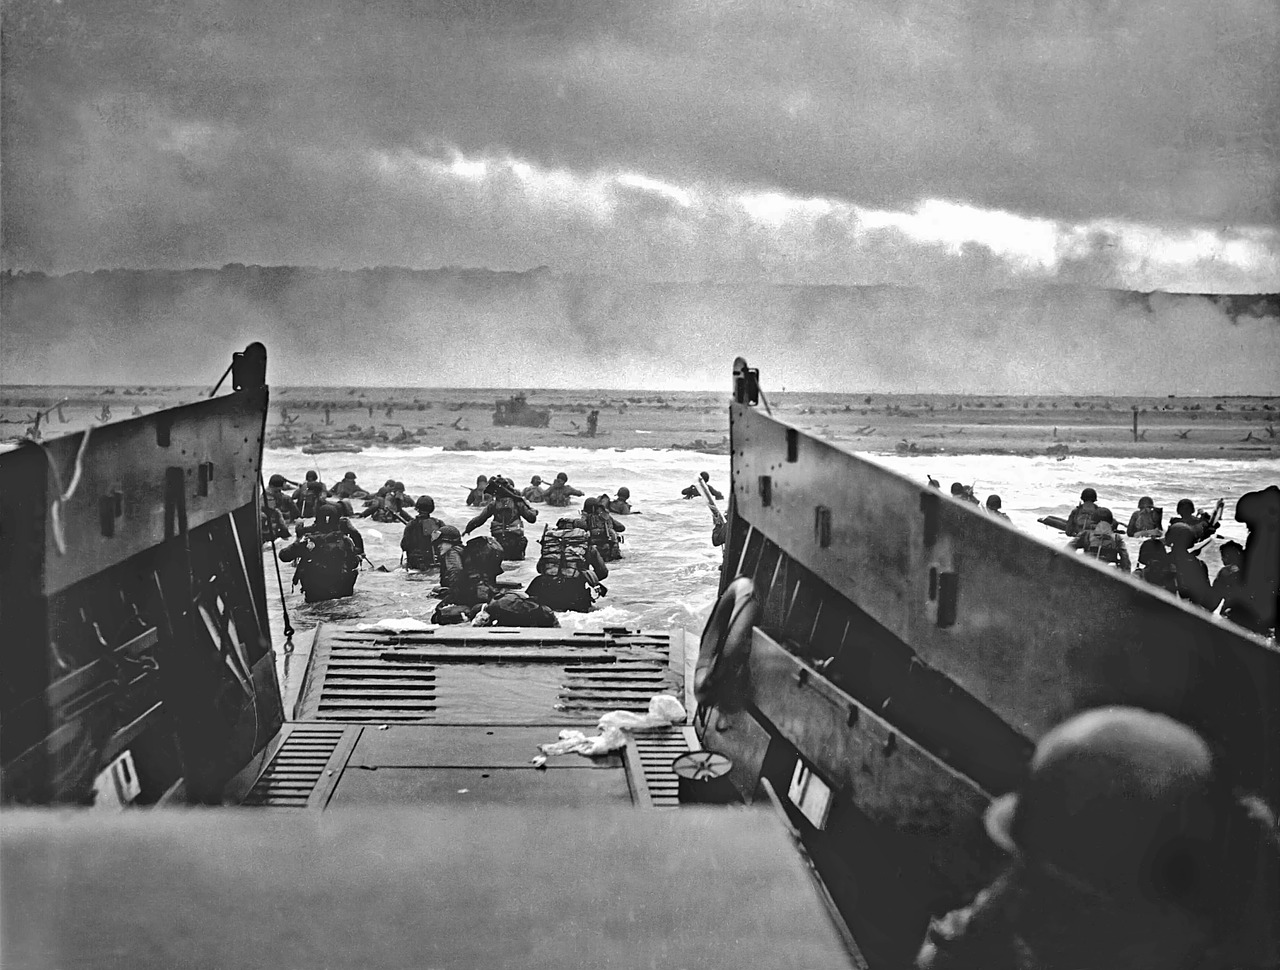 Landing craft on beach during war